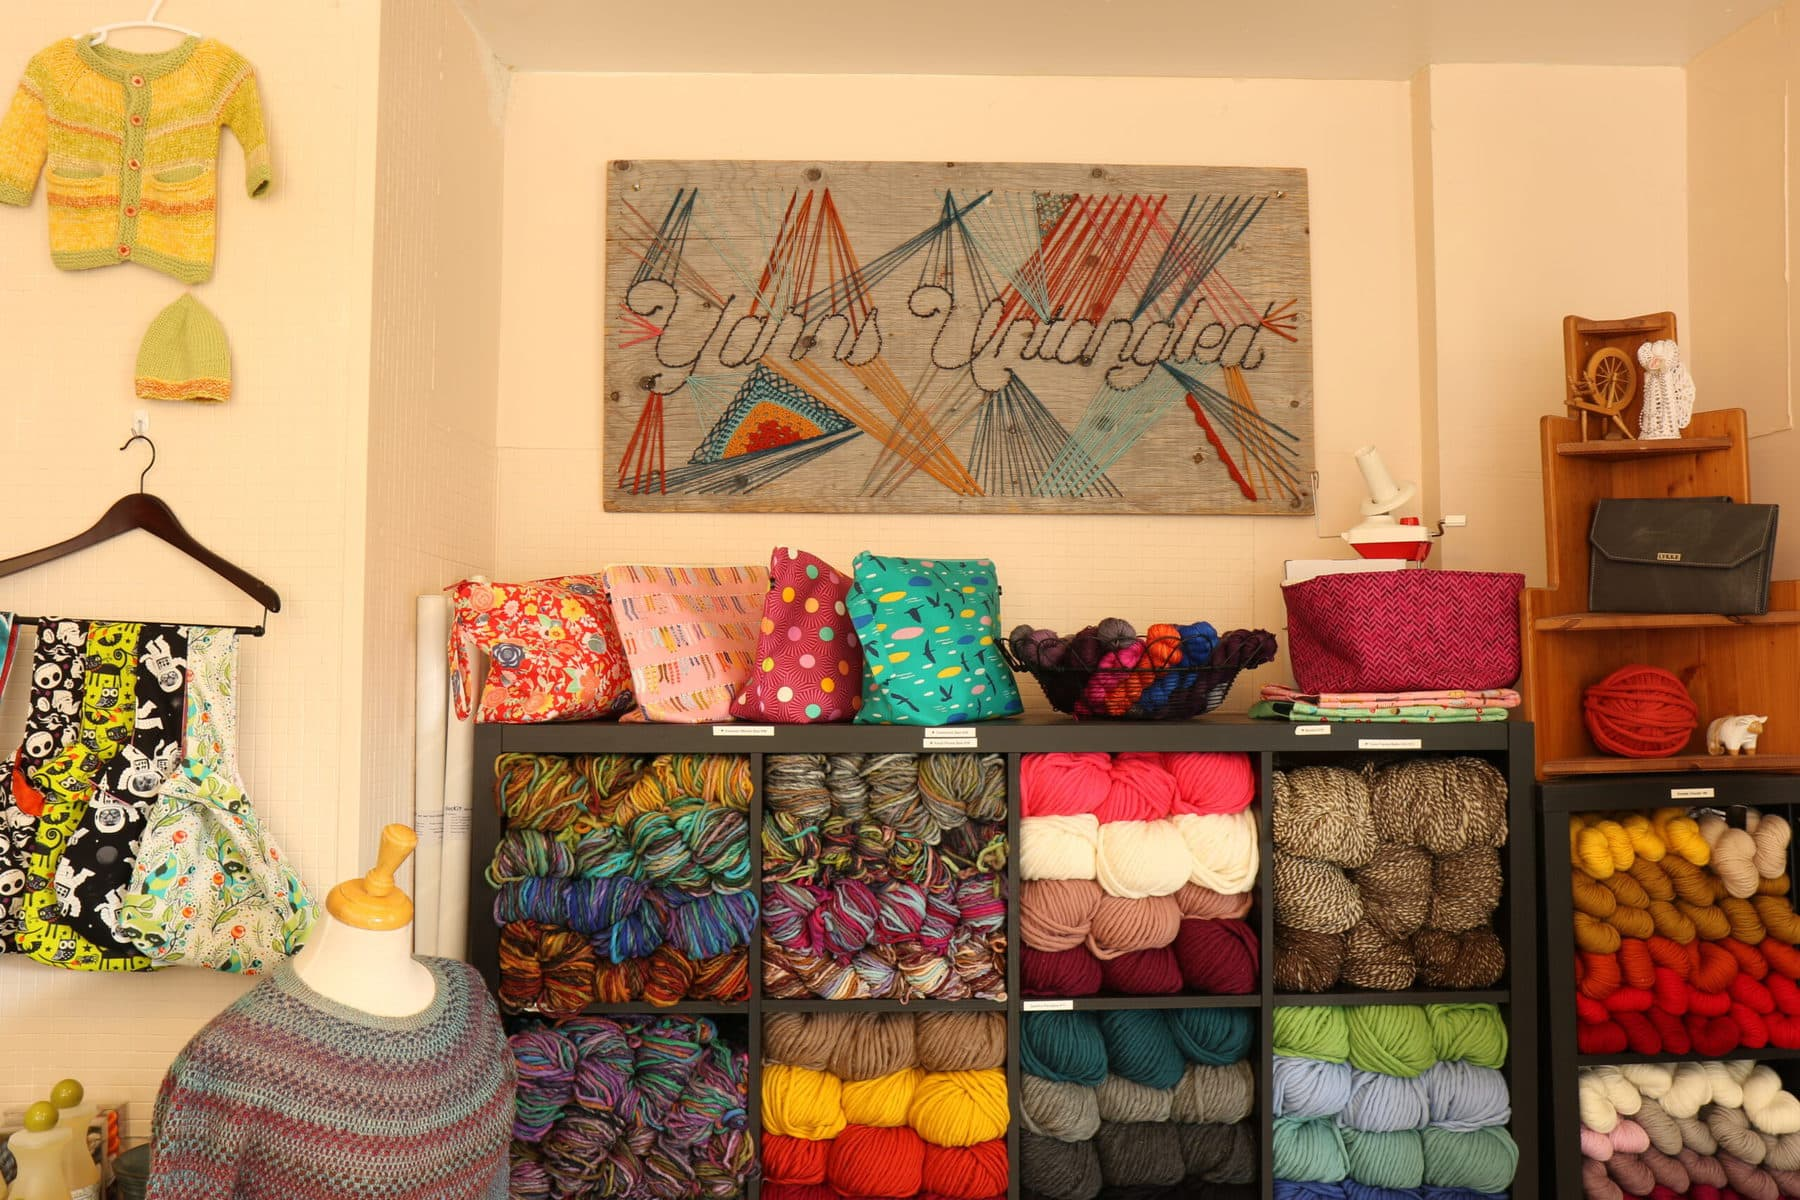 Community Hub for a Solitary Pursuit: Running a Yarn Store in a Pandemic